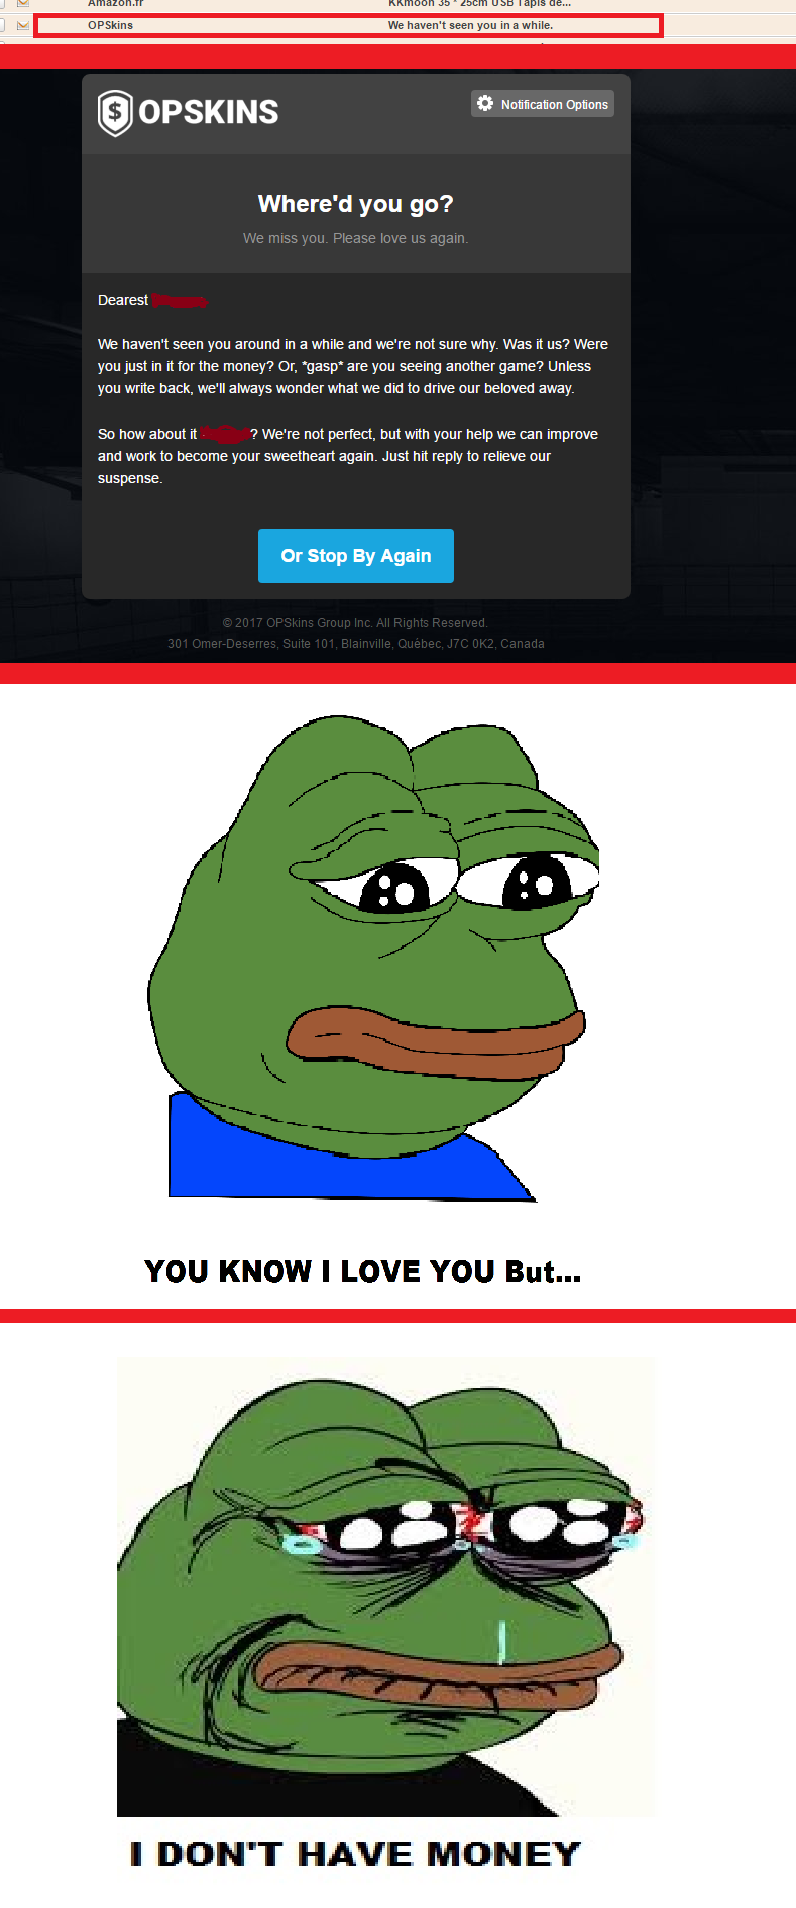 When OPSkins remind you that you don't have any girfriend